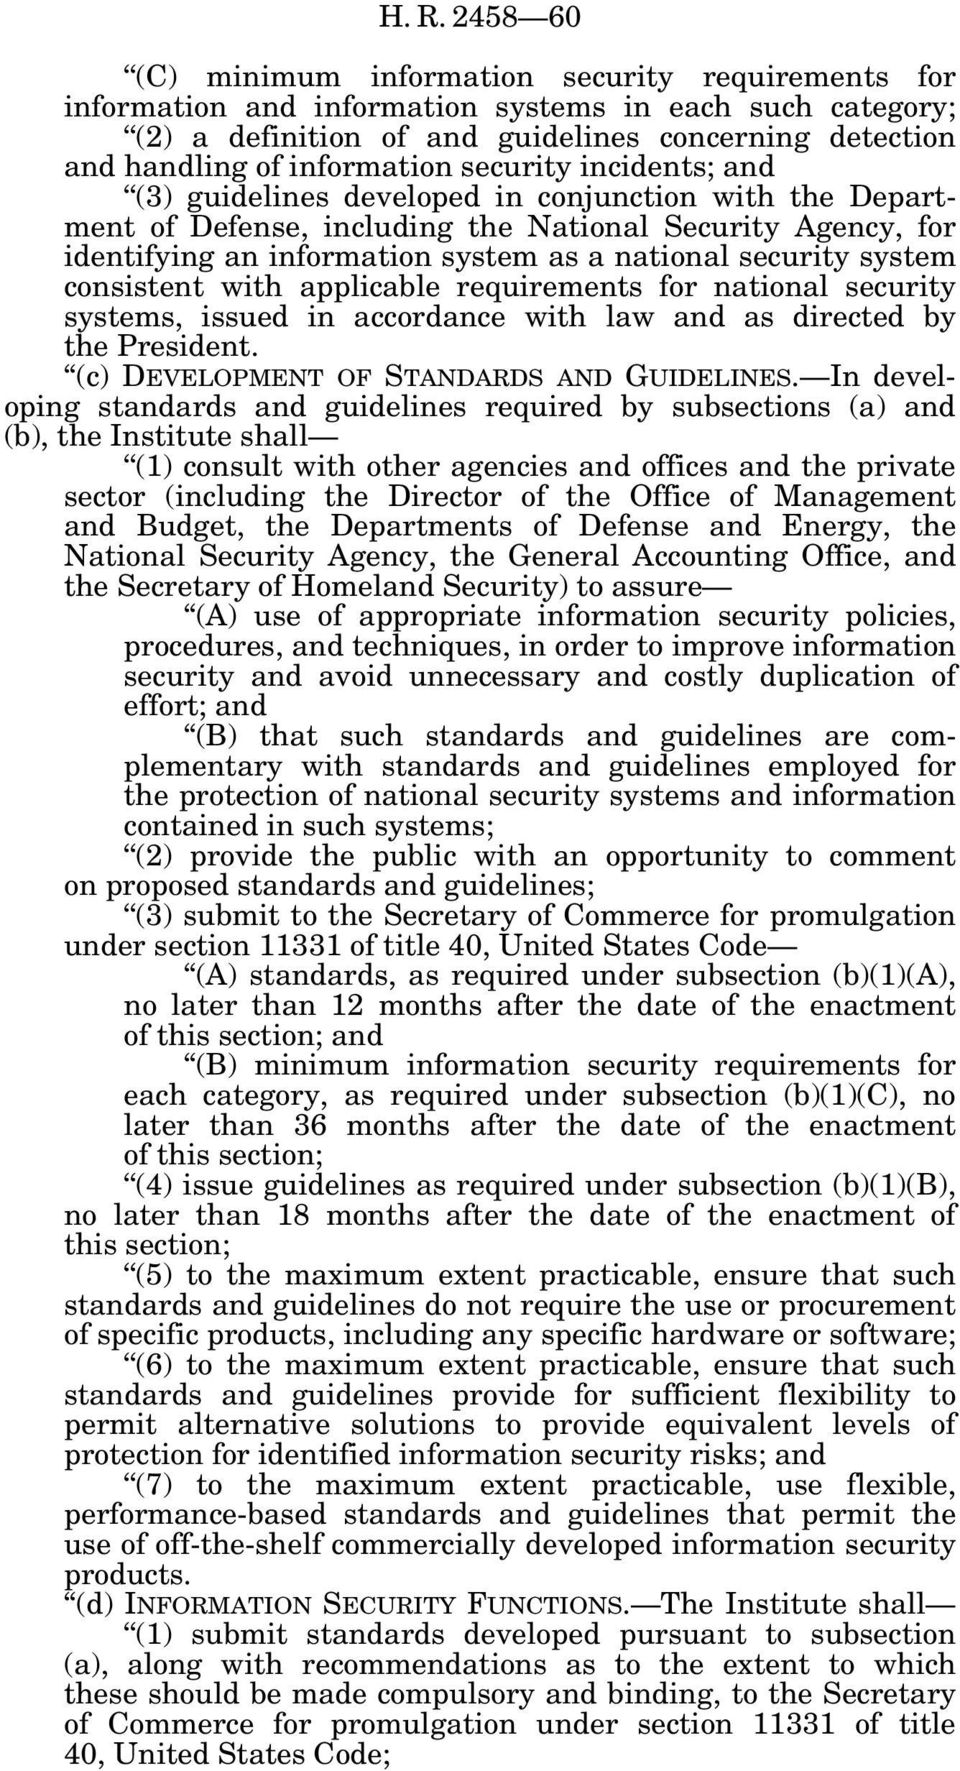 security system consistent with applicable requirements for national security systems, issued in accordance with law and as directed by the President. (c) DEVELOPMENT OF STANDARDS AND GUIDELINES.